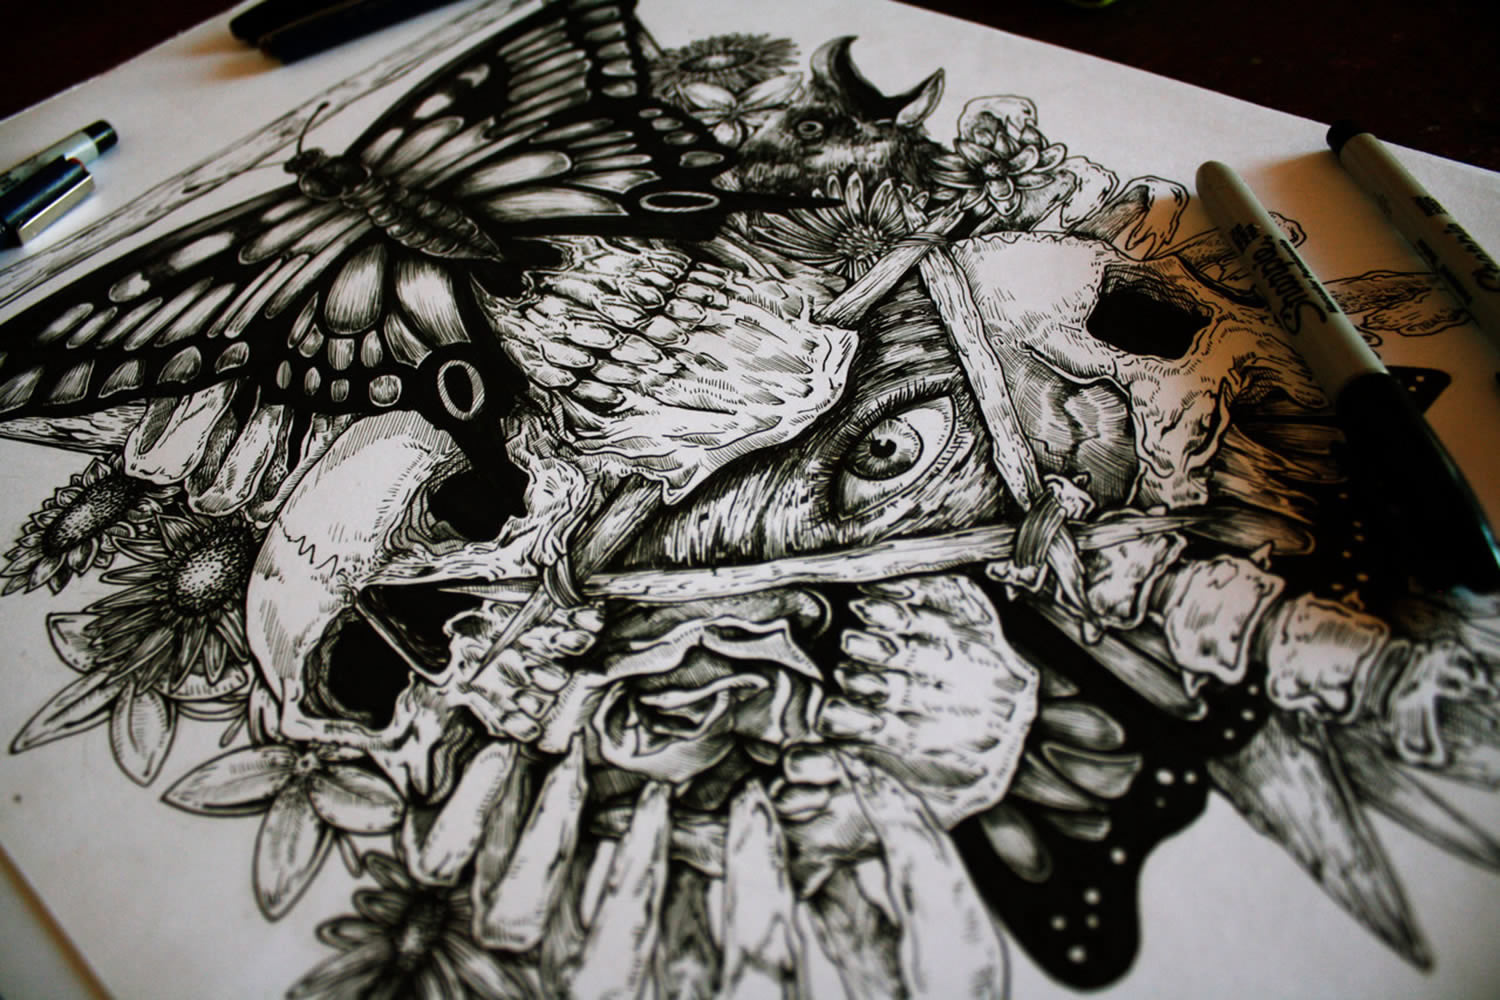 ink drawing with butterfly and eye of providence, metamorphosis by e.g. the freak